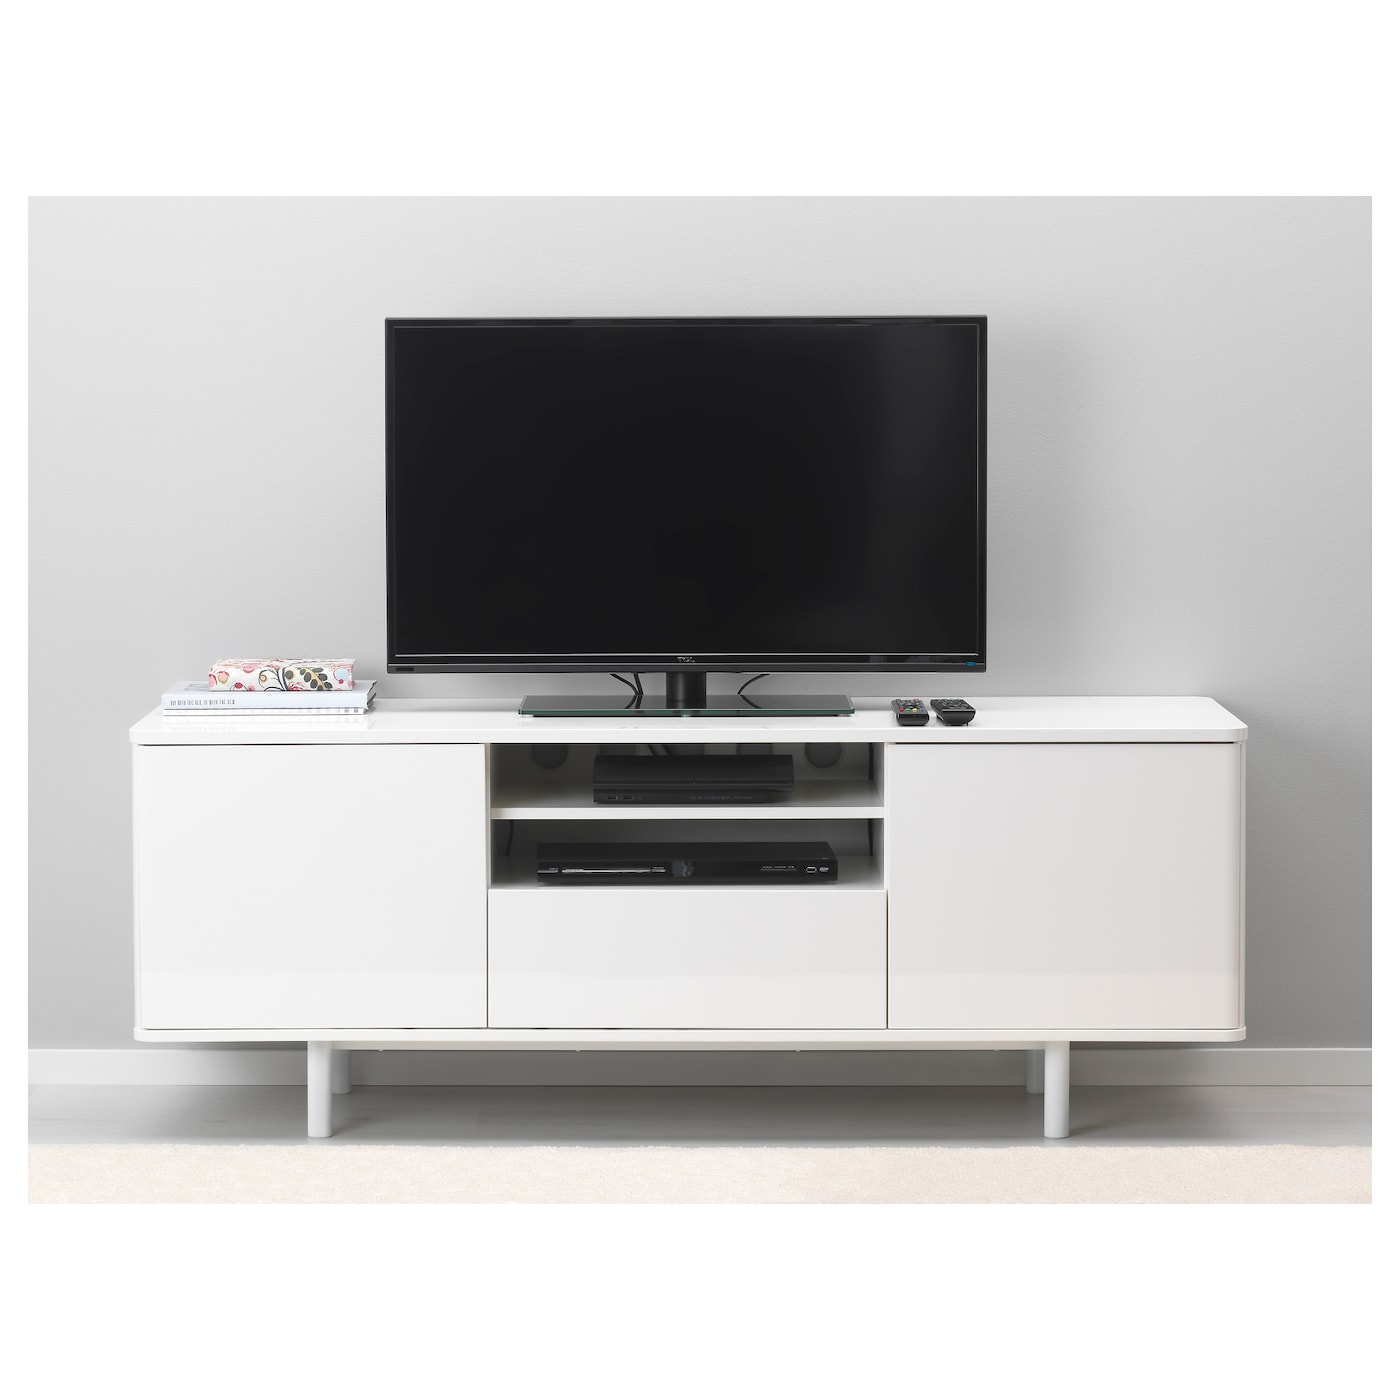 mostorp banc tv brillant blanc 159x46 cm ikea. Black Bedroom Furniture Sets. Home Design Ideas